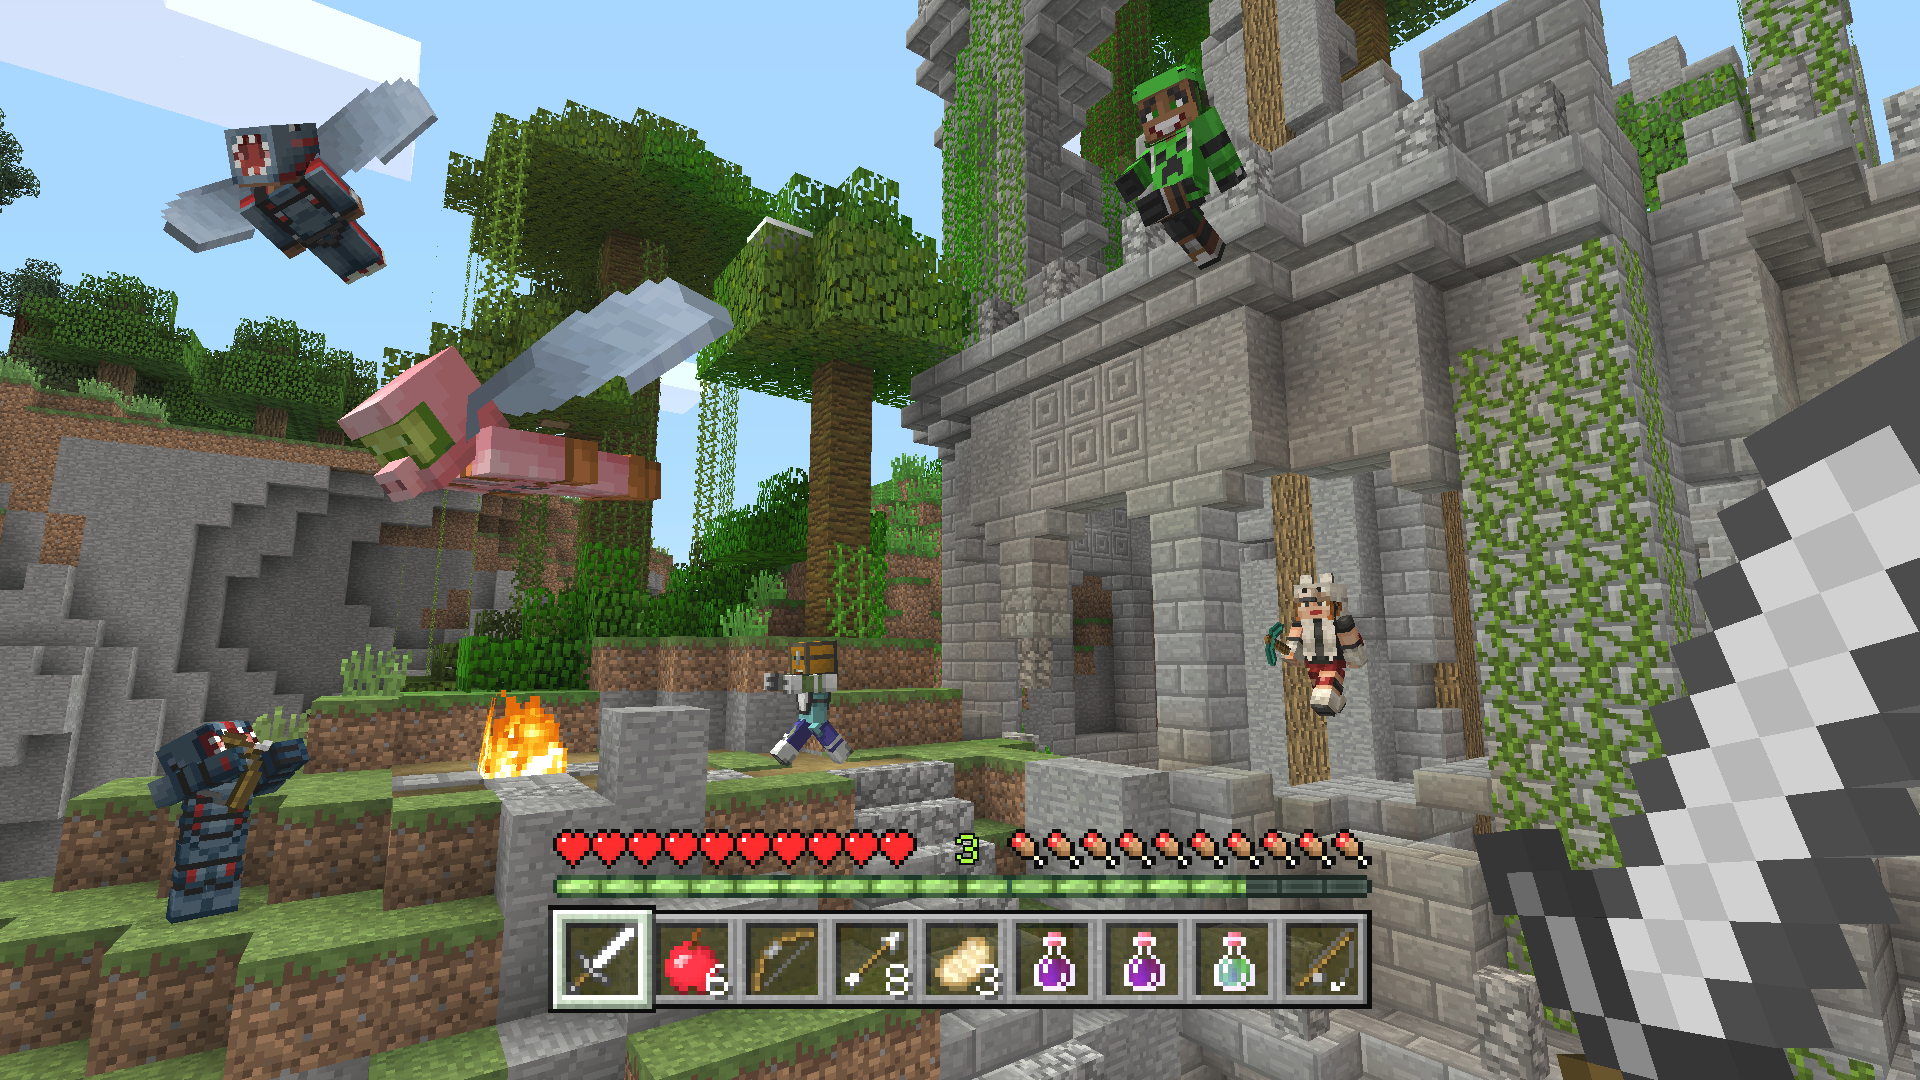 Minecraft: Player builds World 1-1 from Super Mario Bros.